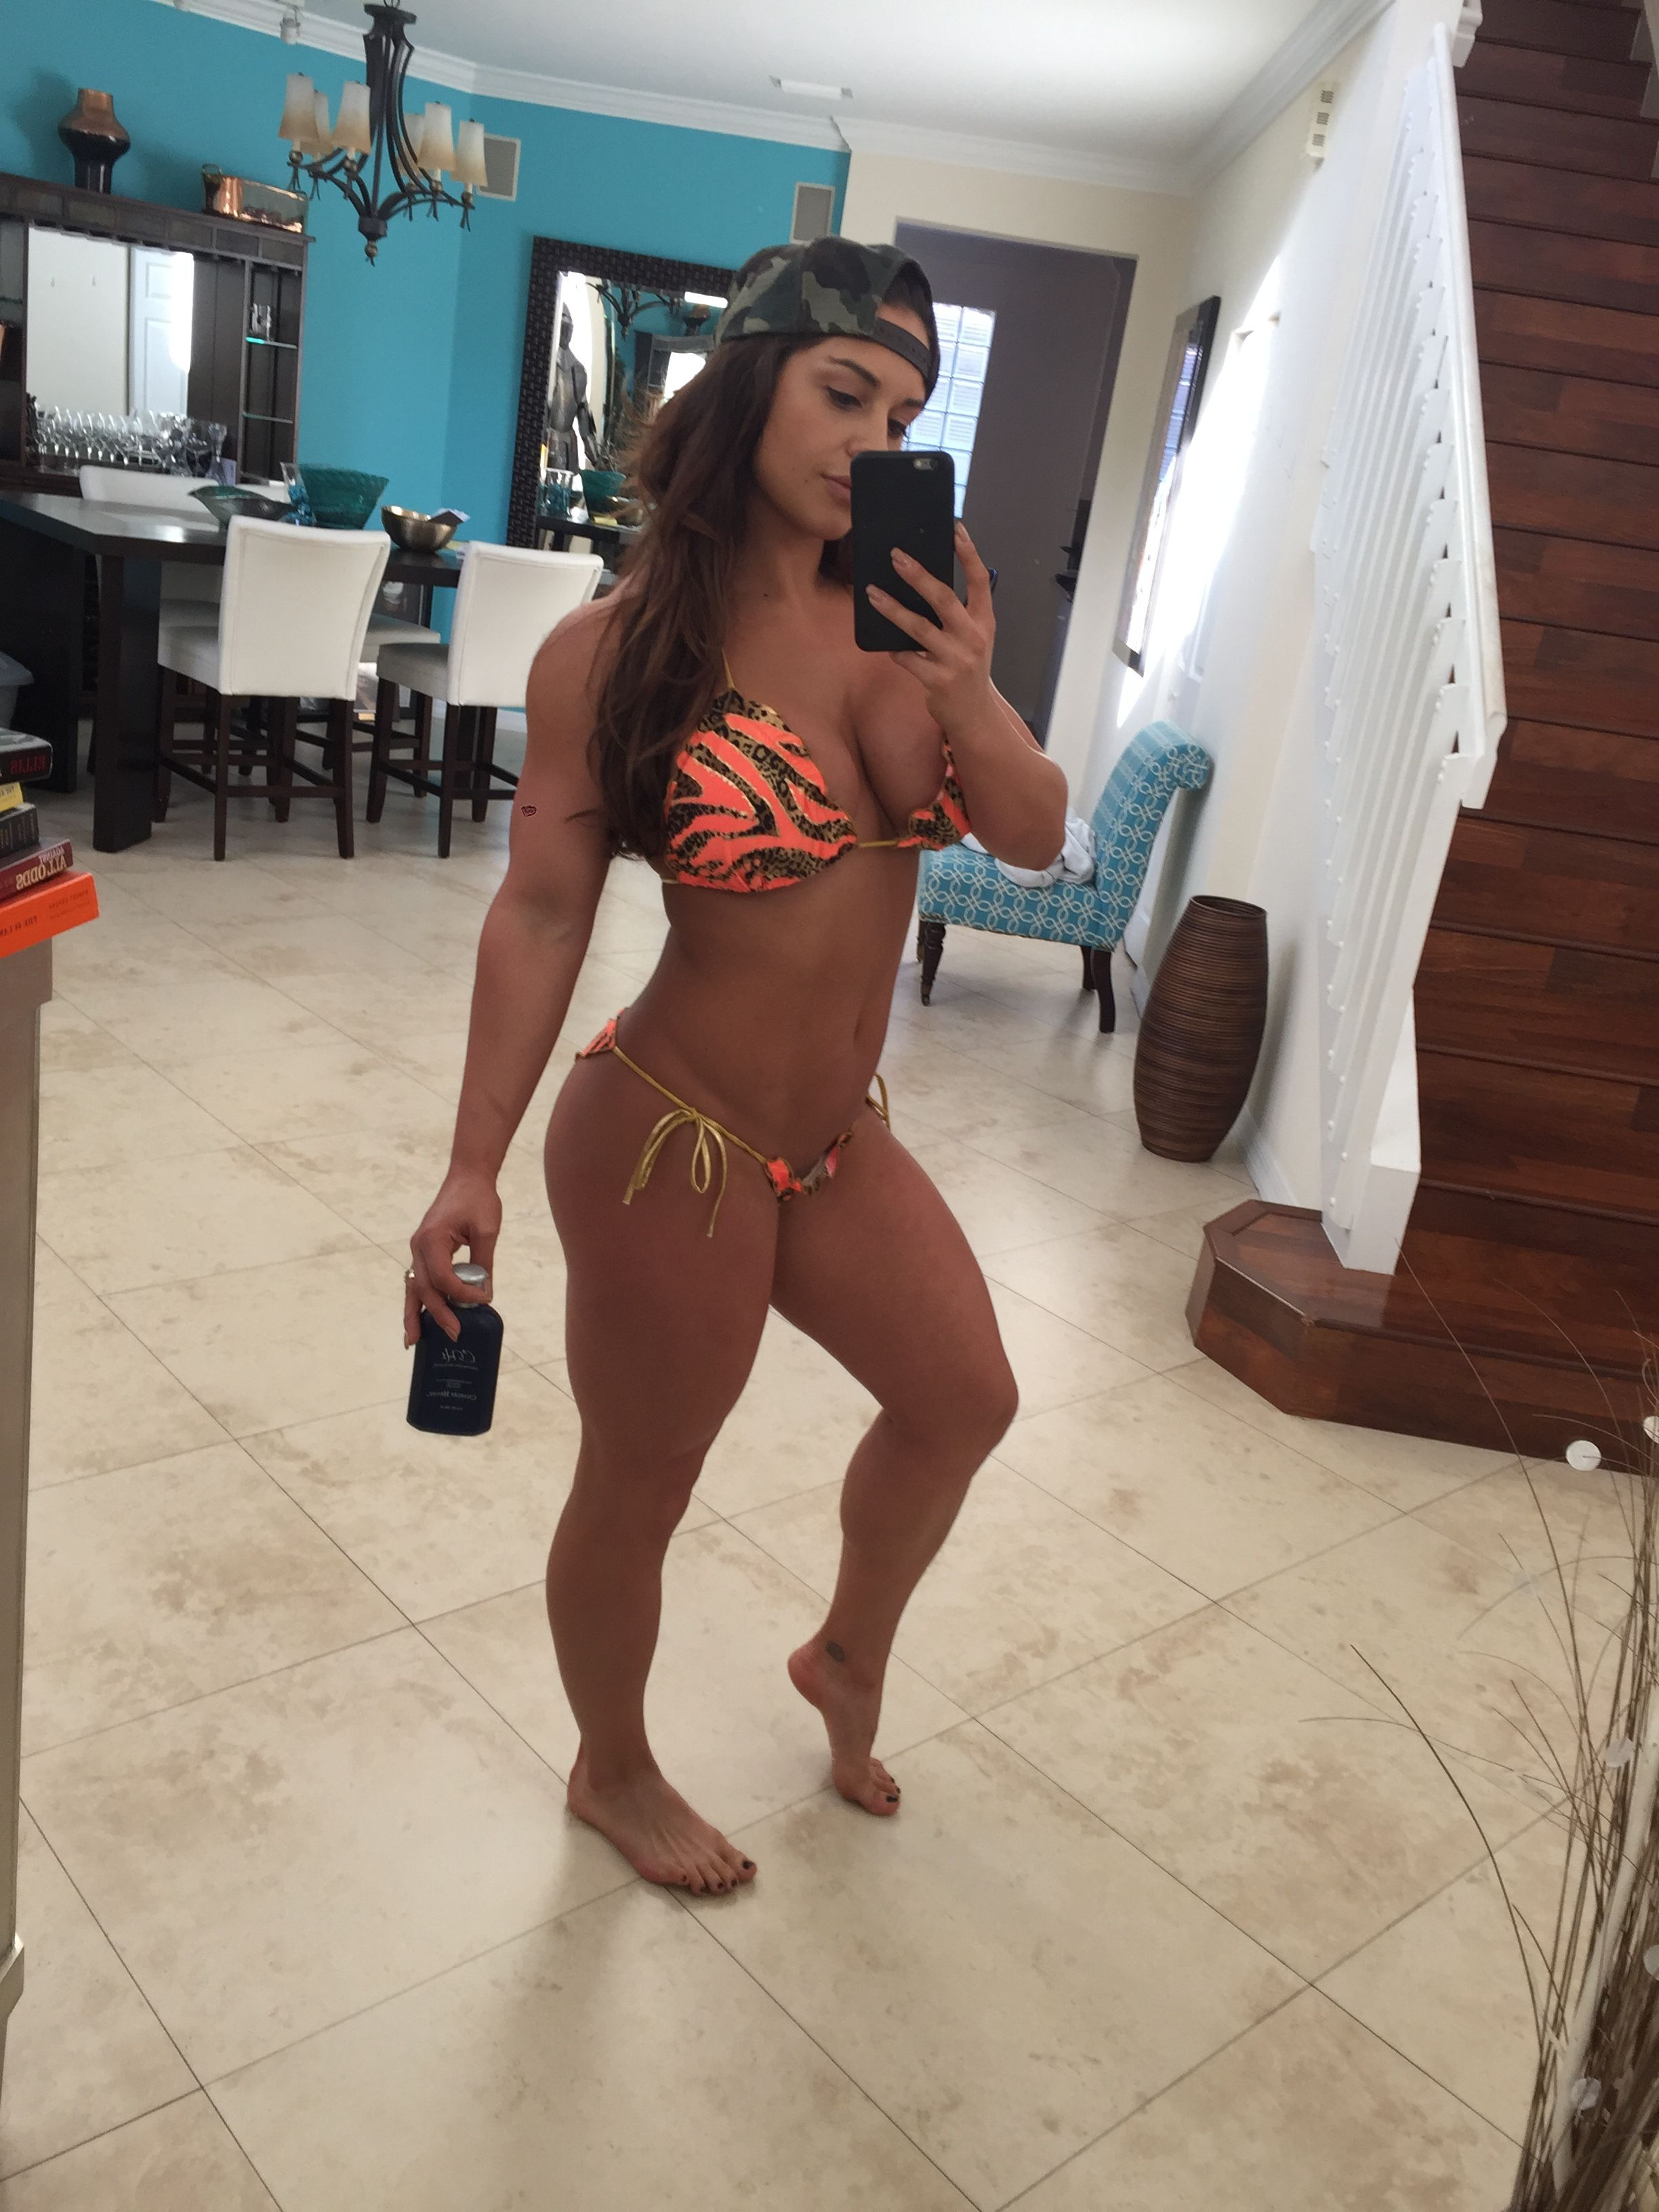 Celeste Bonin: Leaked Pictures Collection new images